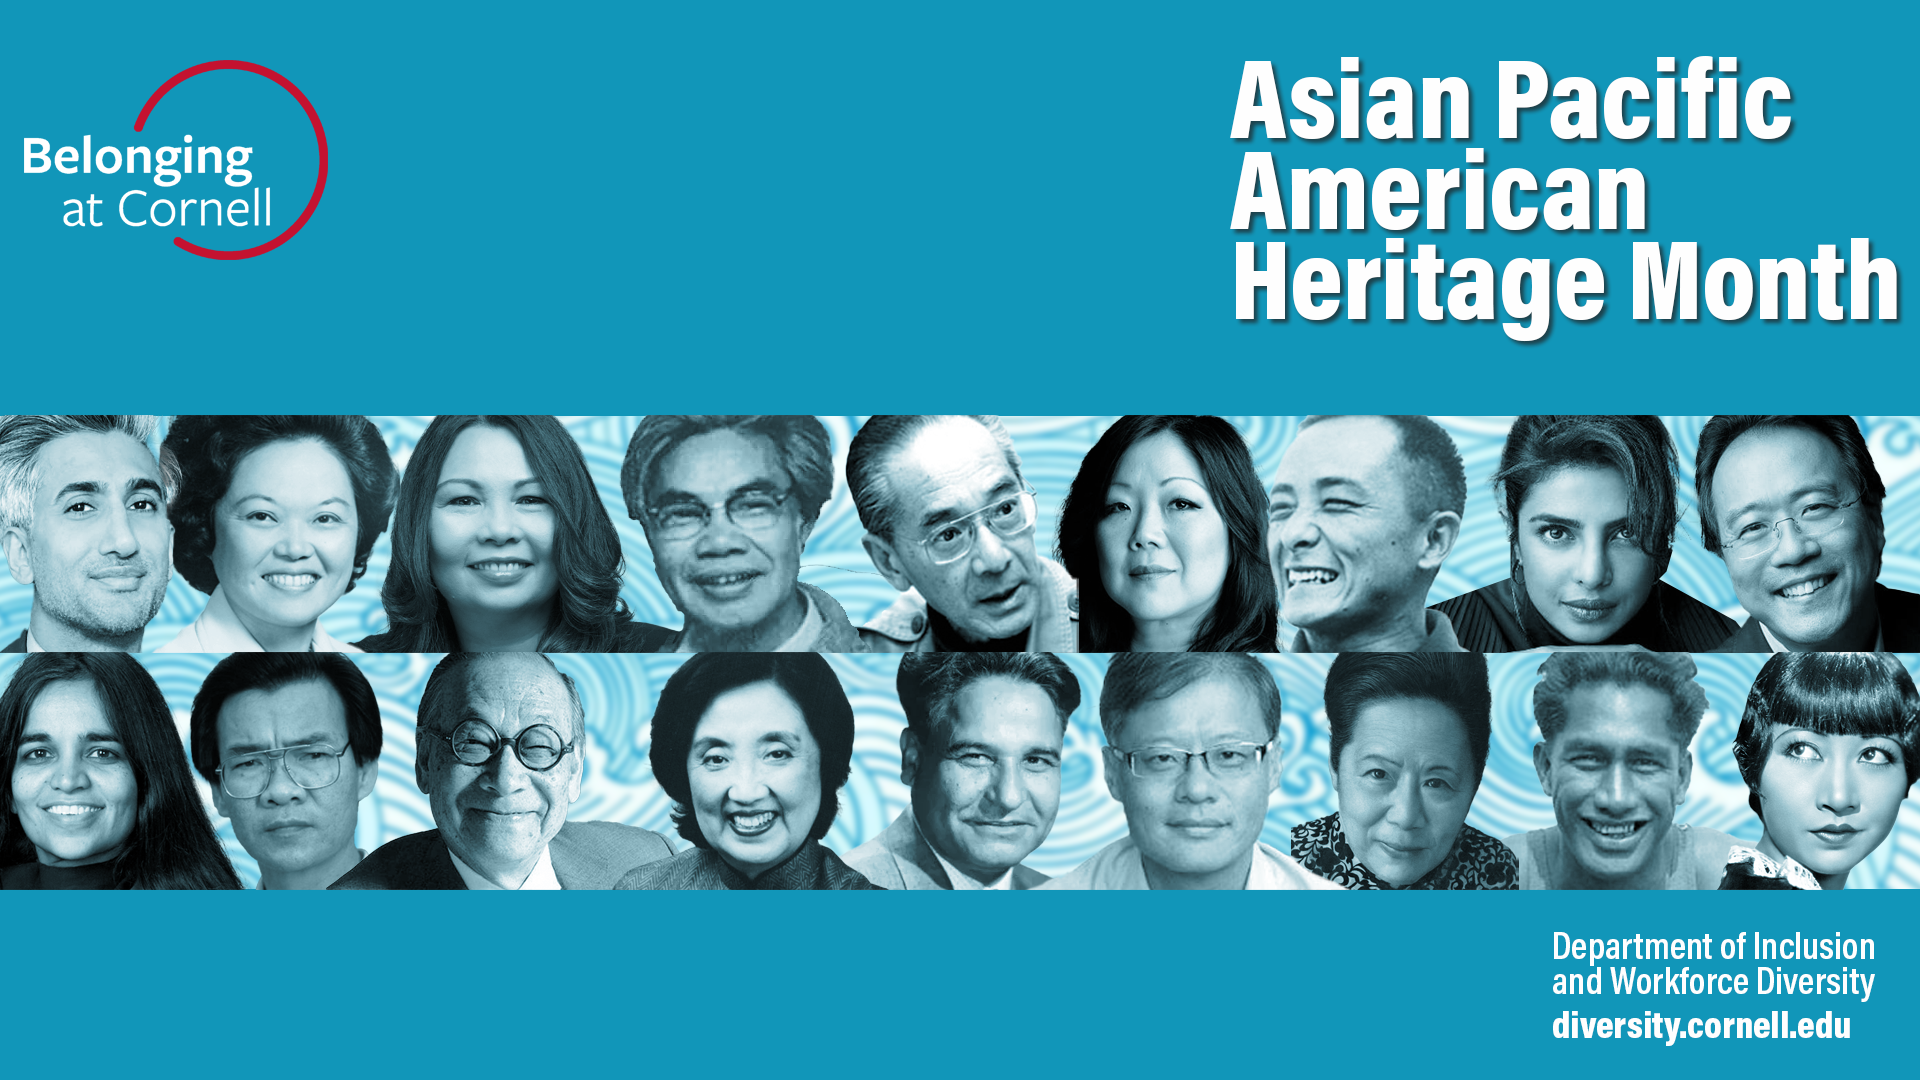 Zoom Background (historical and cultural figures) visual in honor of Asian Pacific American Heritage Month